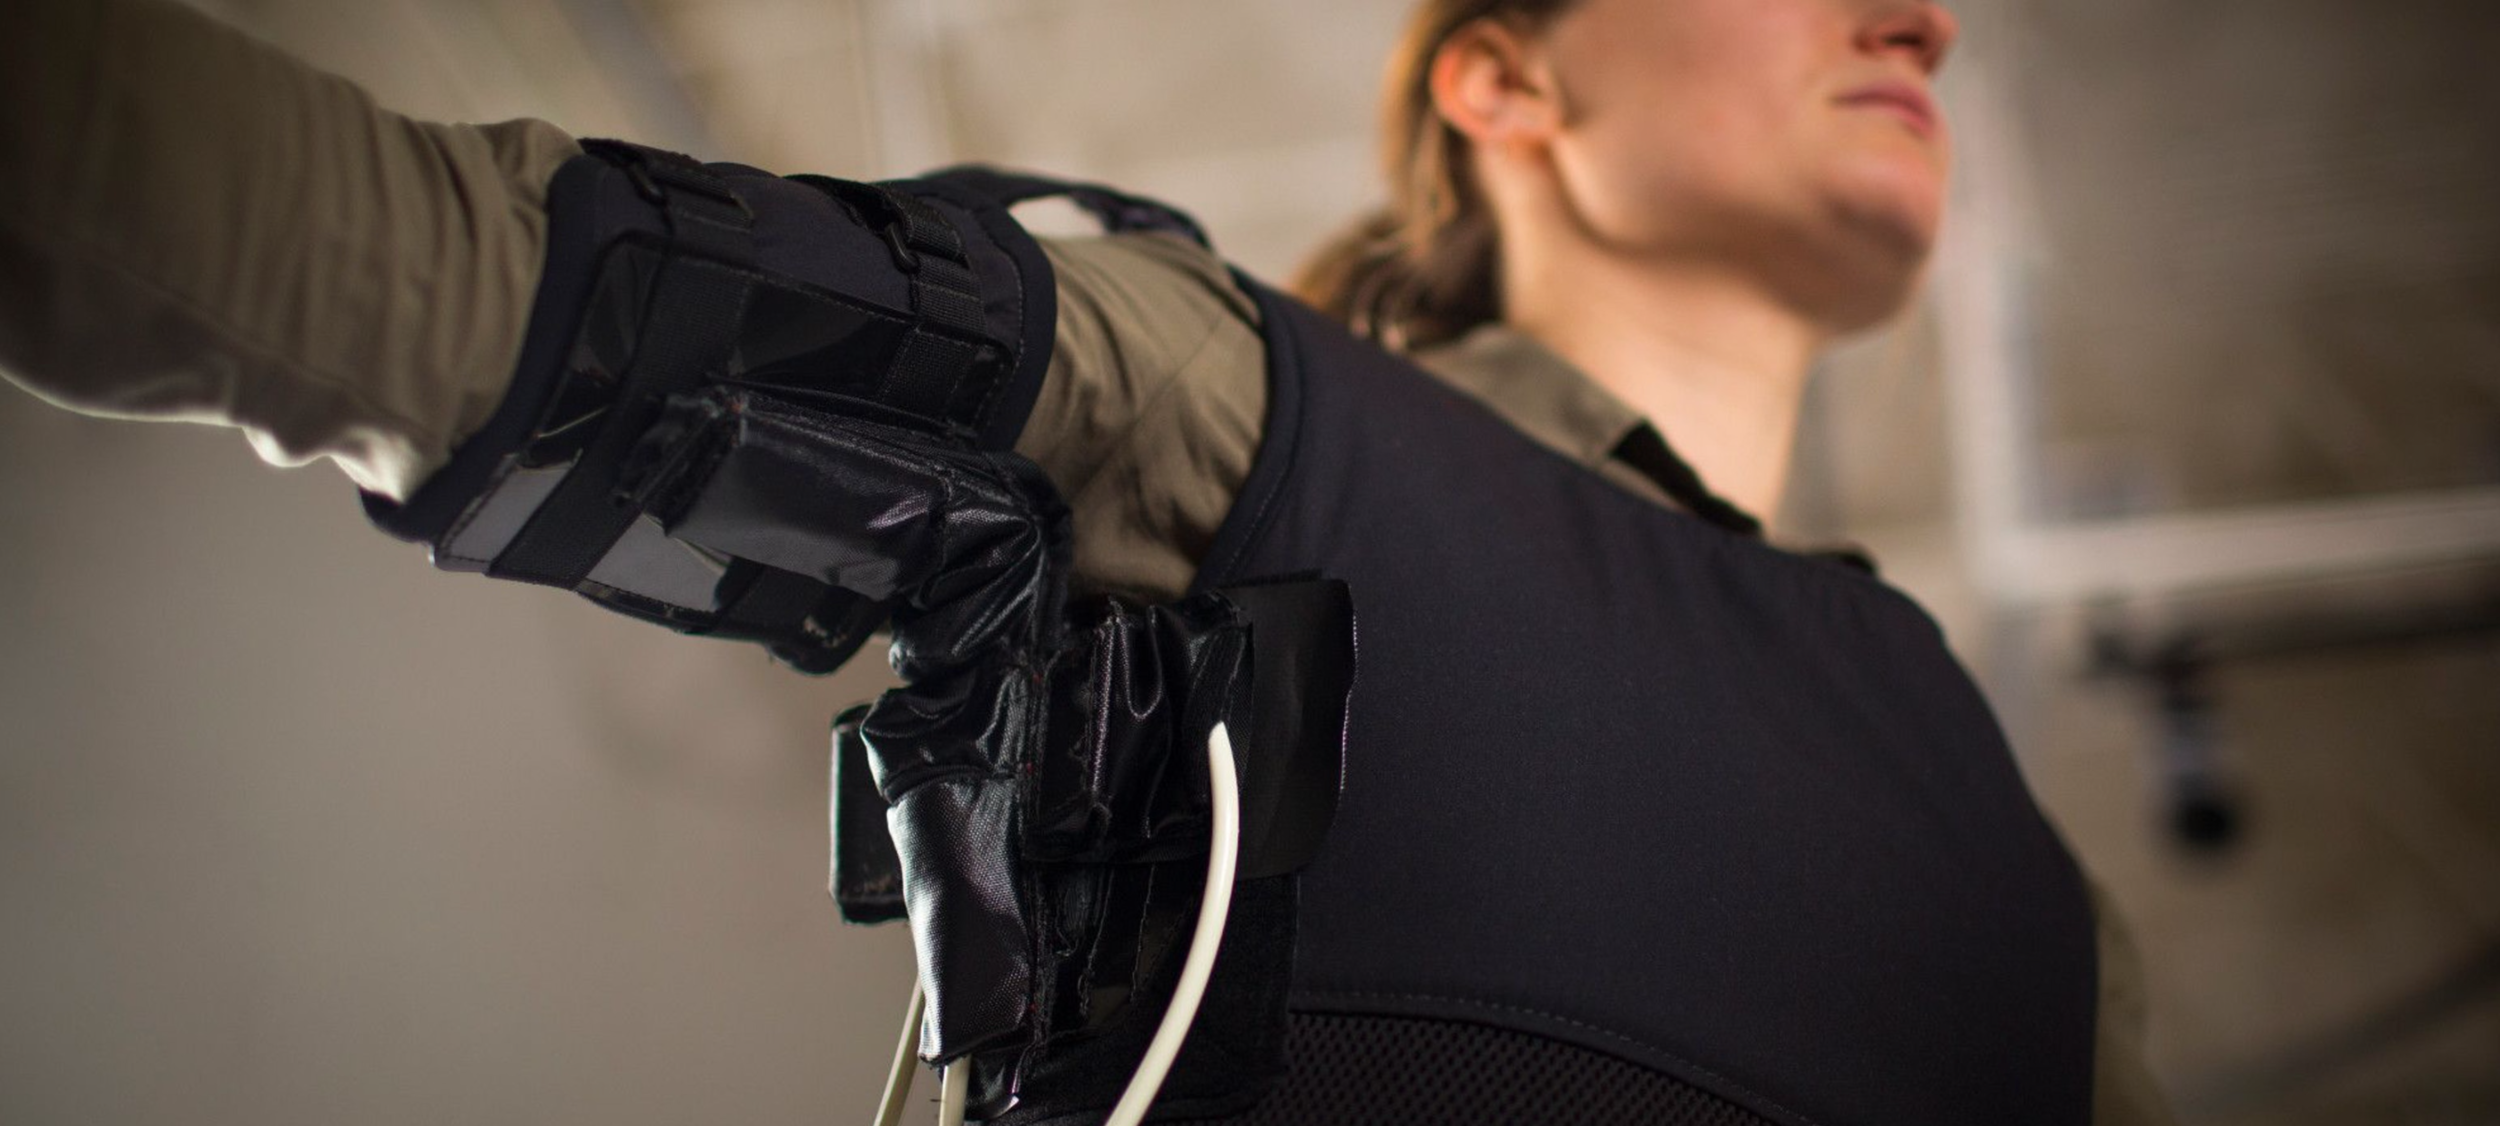 Property of Wyss Institute (https://wyss.harvard.edu/technology/soft-wearable-shoulder-assistive-device/)